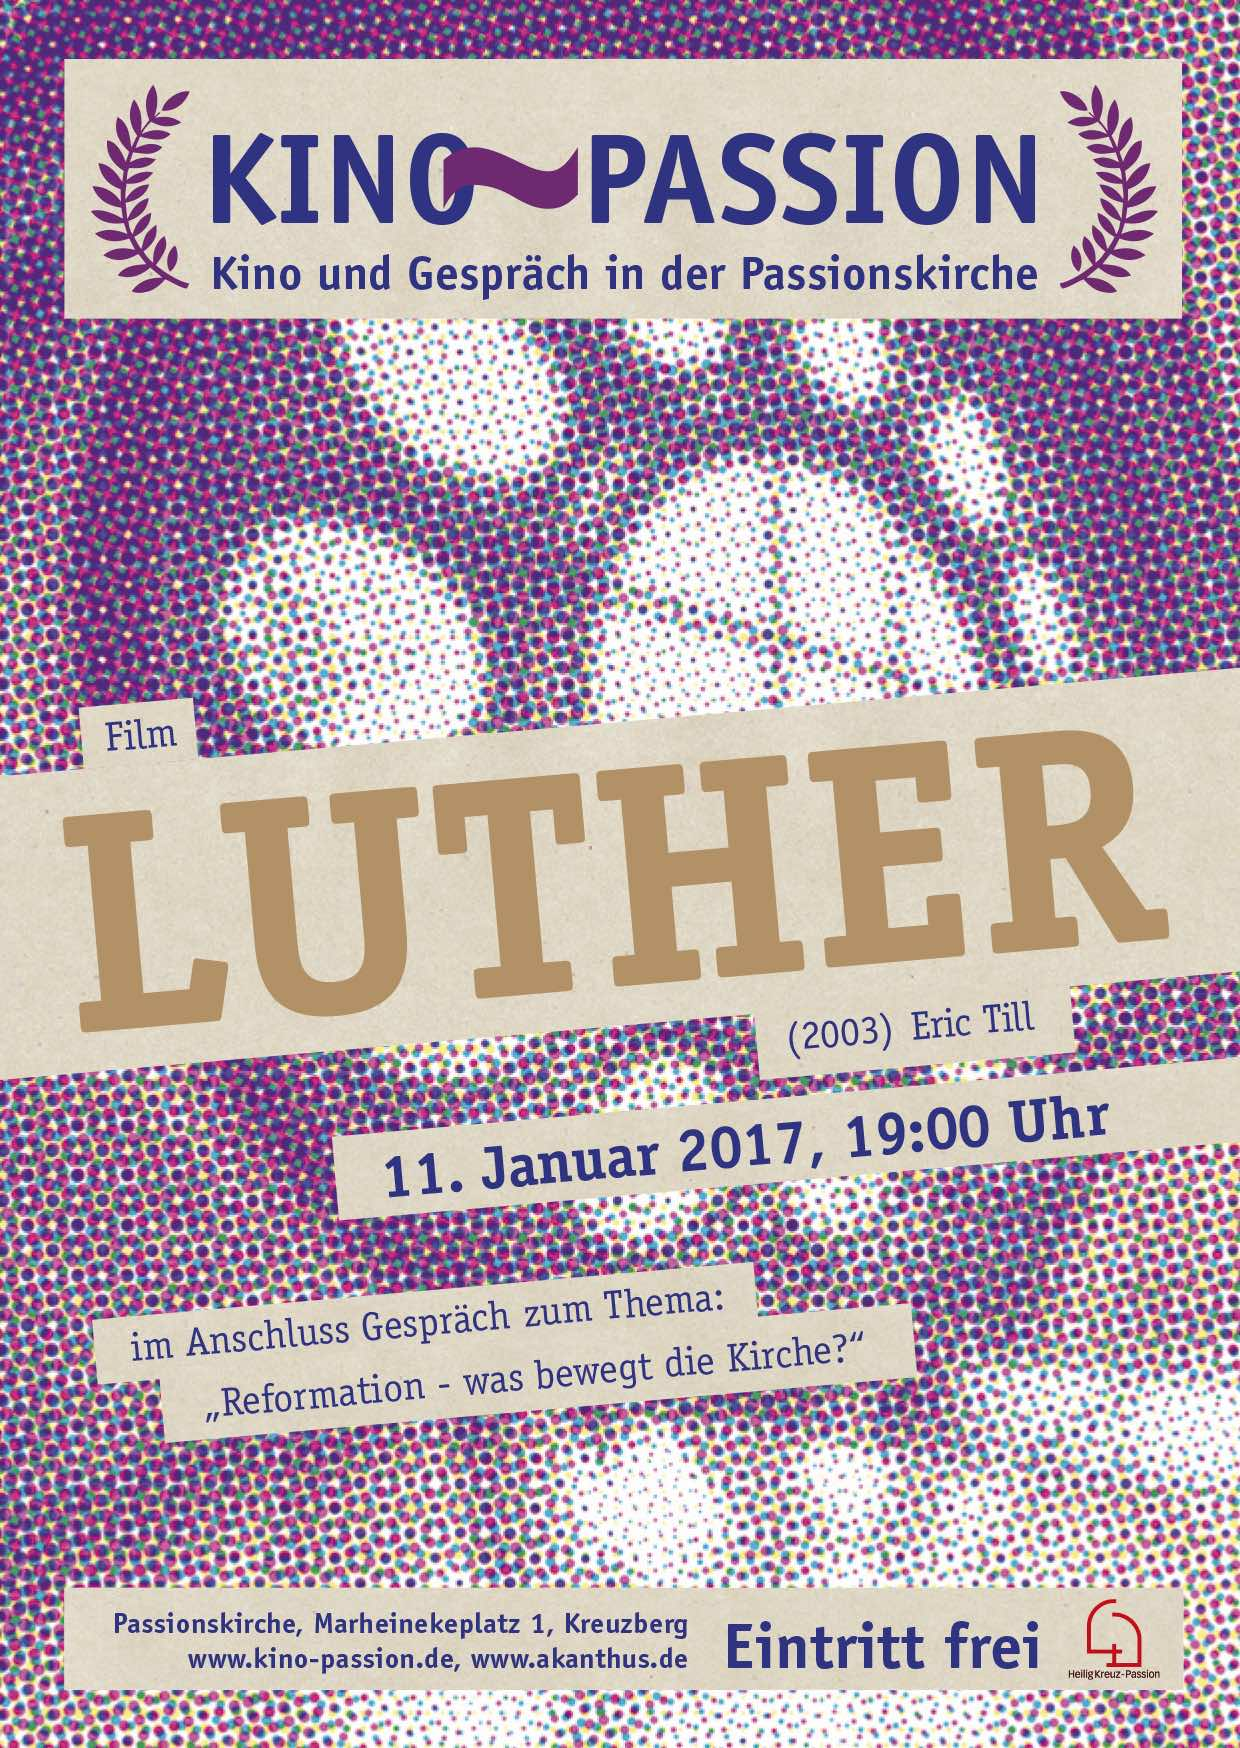 78_Kino_Passion_Luther.jpg